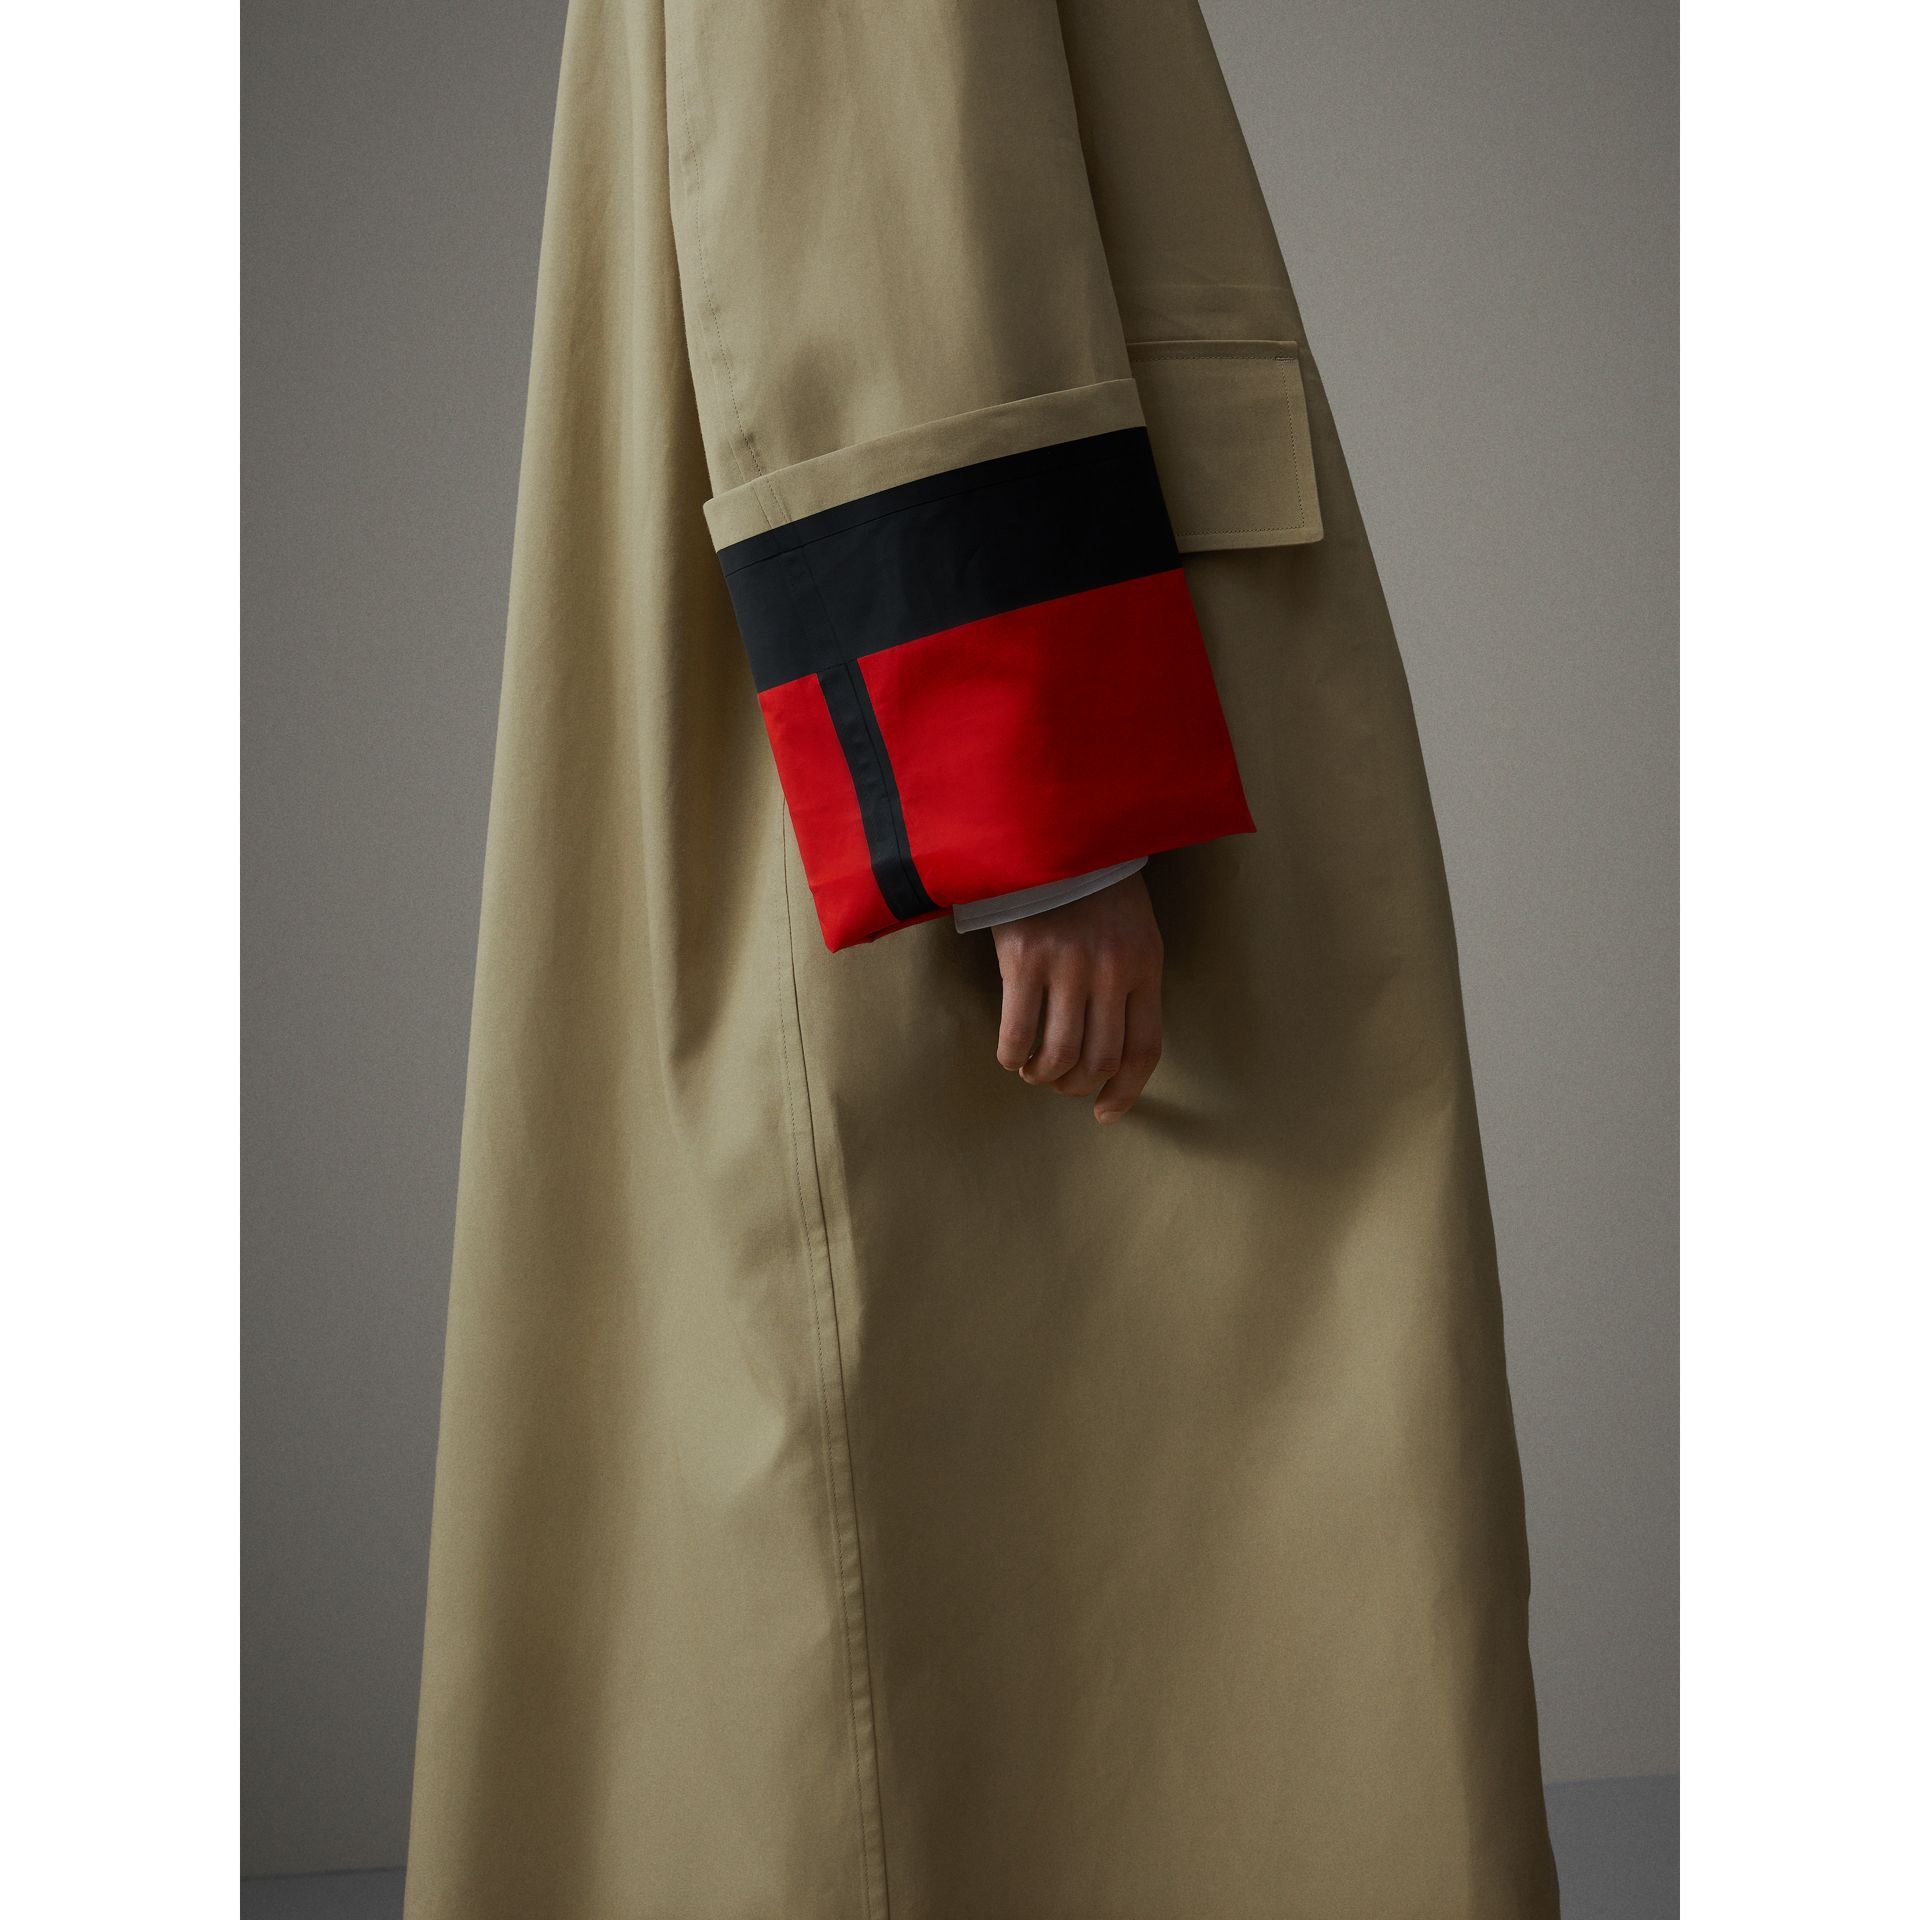 Bonded Cotton Poplin Seam-sealed Car Coat in Beige/red - Women | Burberry Hong Kong - gallery image 2